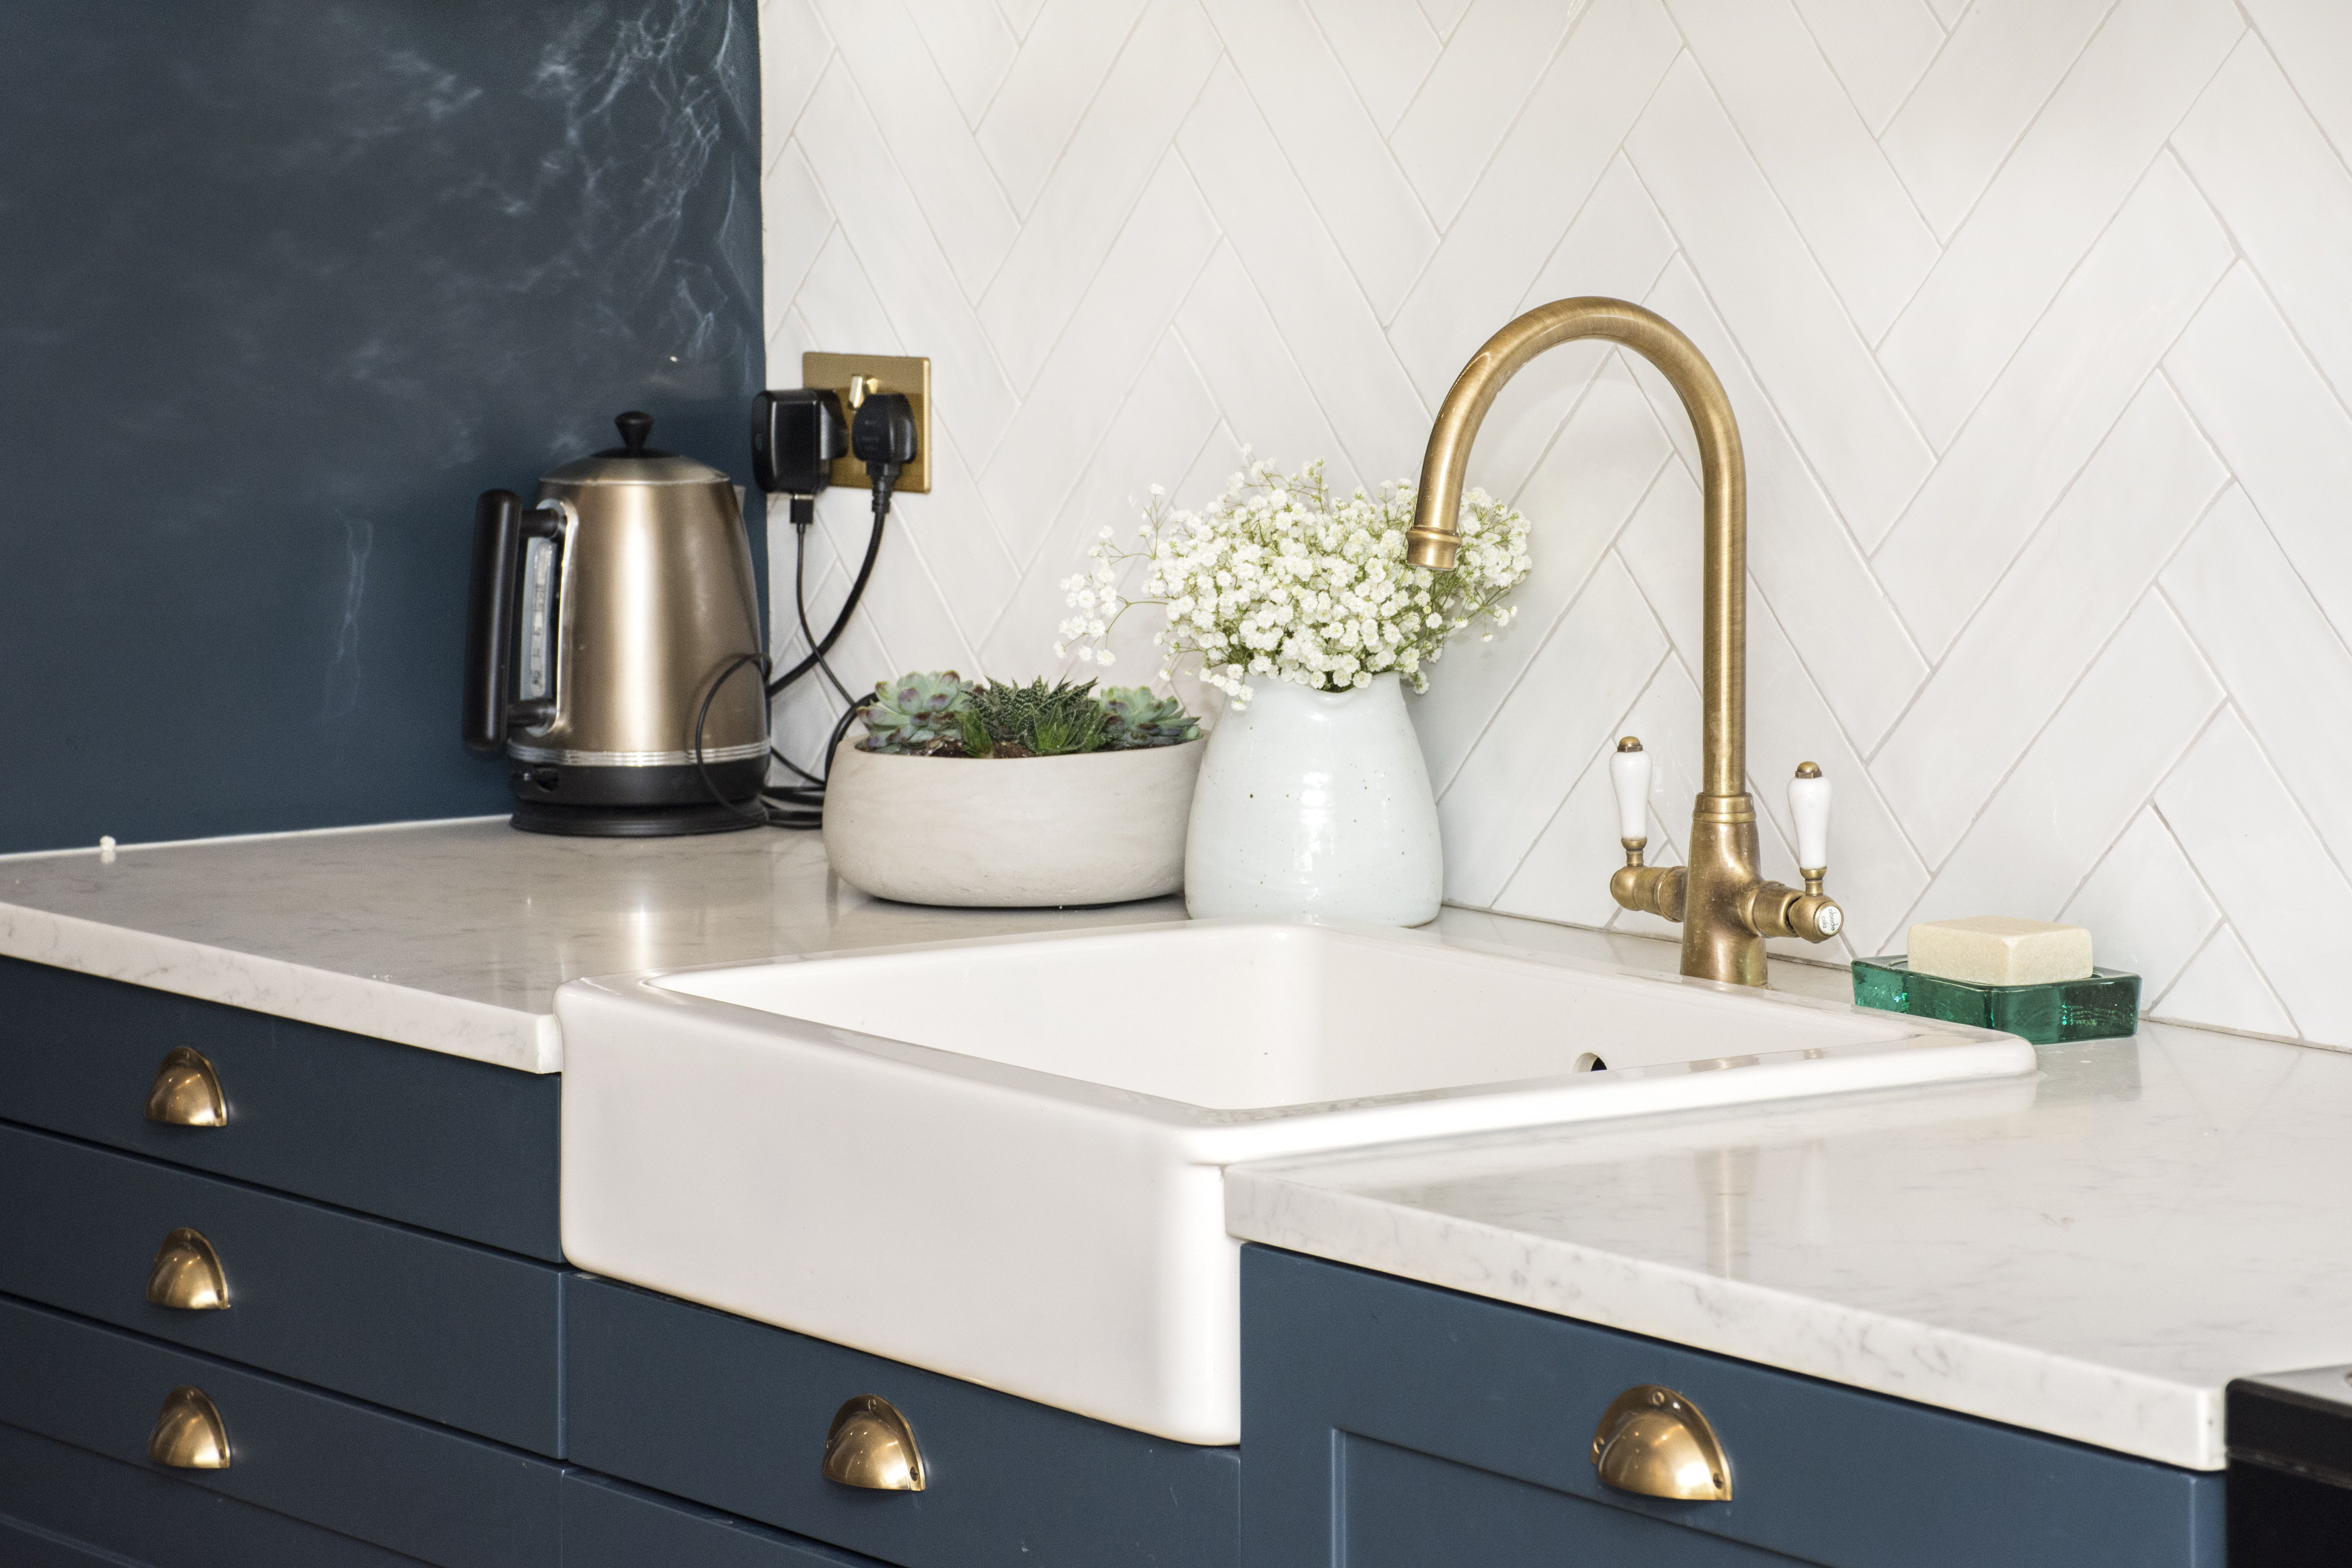 Kitchen was created by mixing IKEA bases and custom made ...